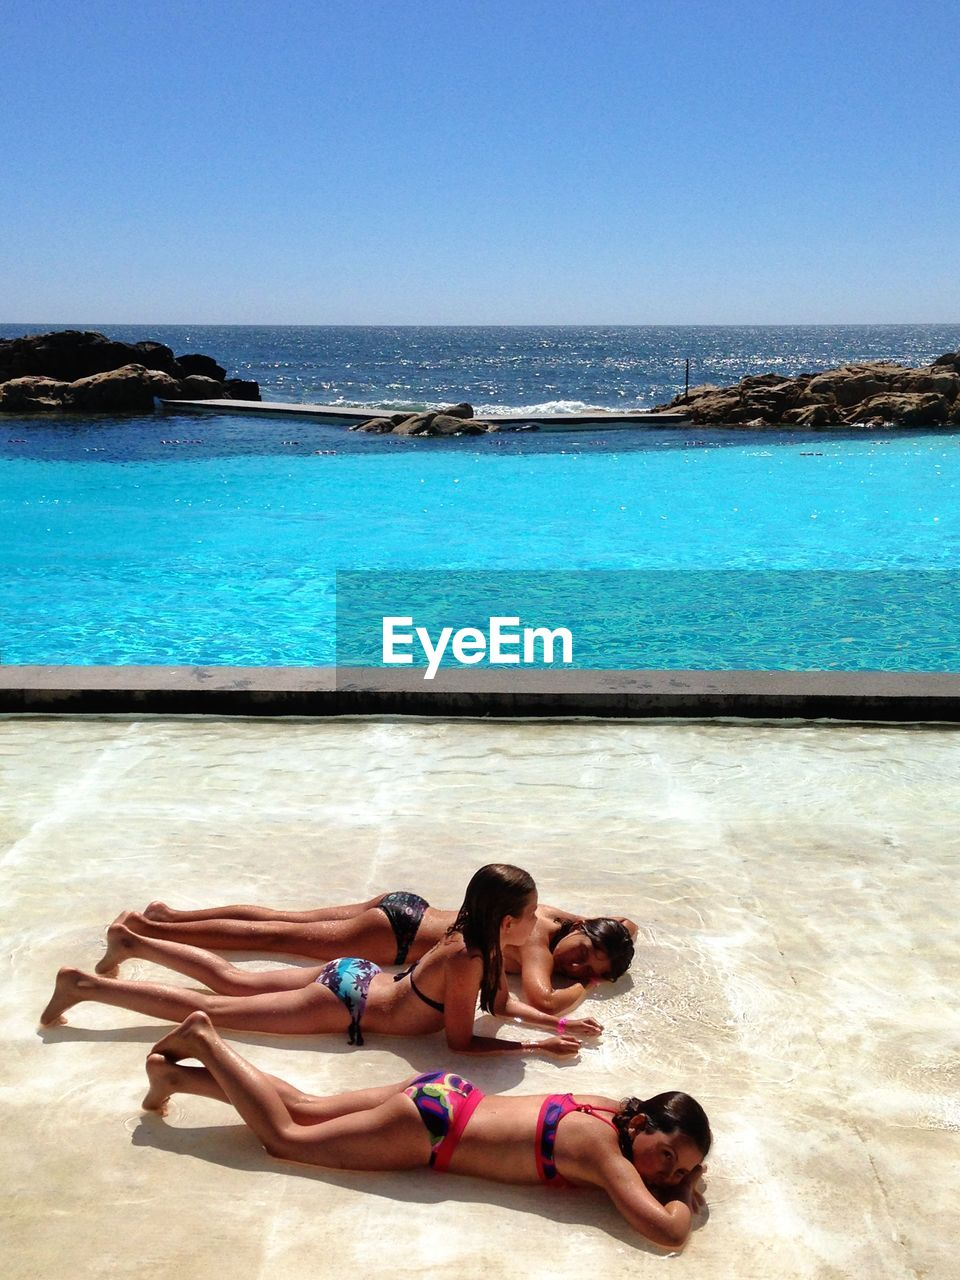 bikini, sea, water, two people, beach, day, young adult, full length, outdoors, summer, nature, clear sky, beauty in nature, scenics, vacations, young women, blue, sand, togetherness, shirtless, relaxation, lying down, real people, horizon over water, sky